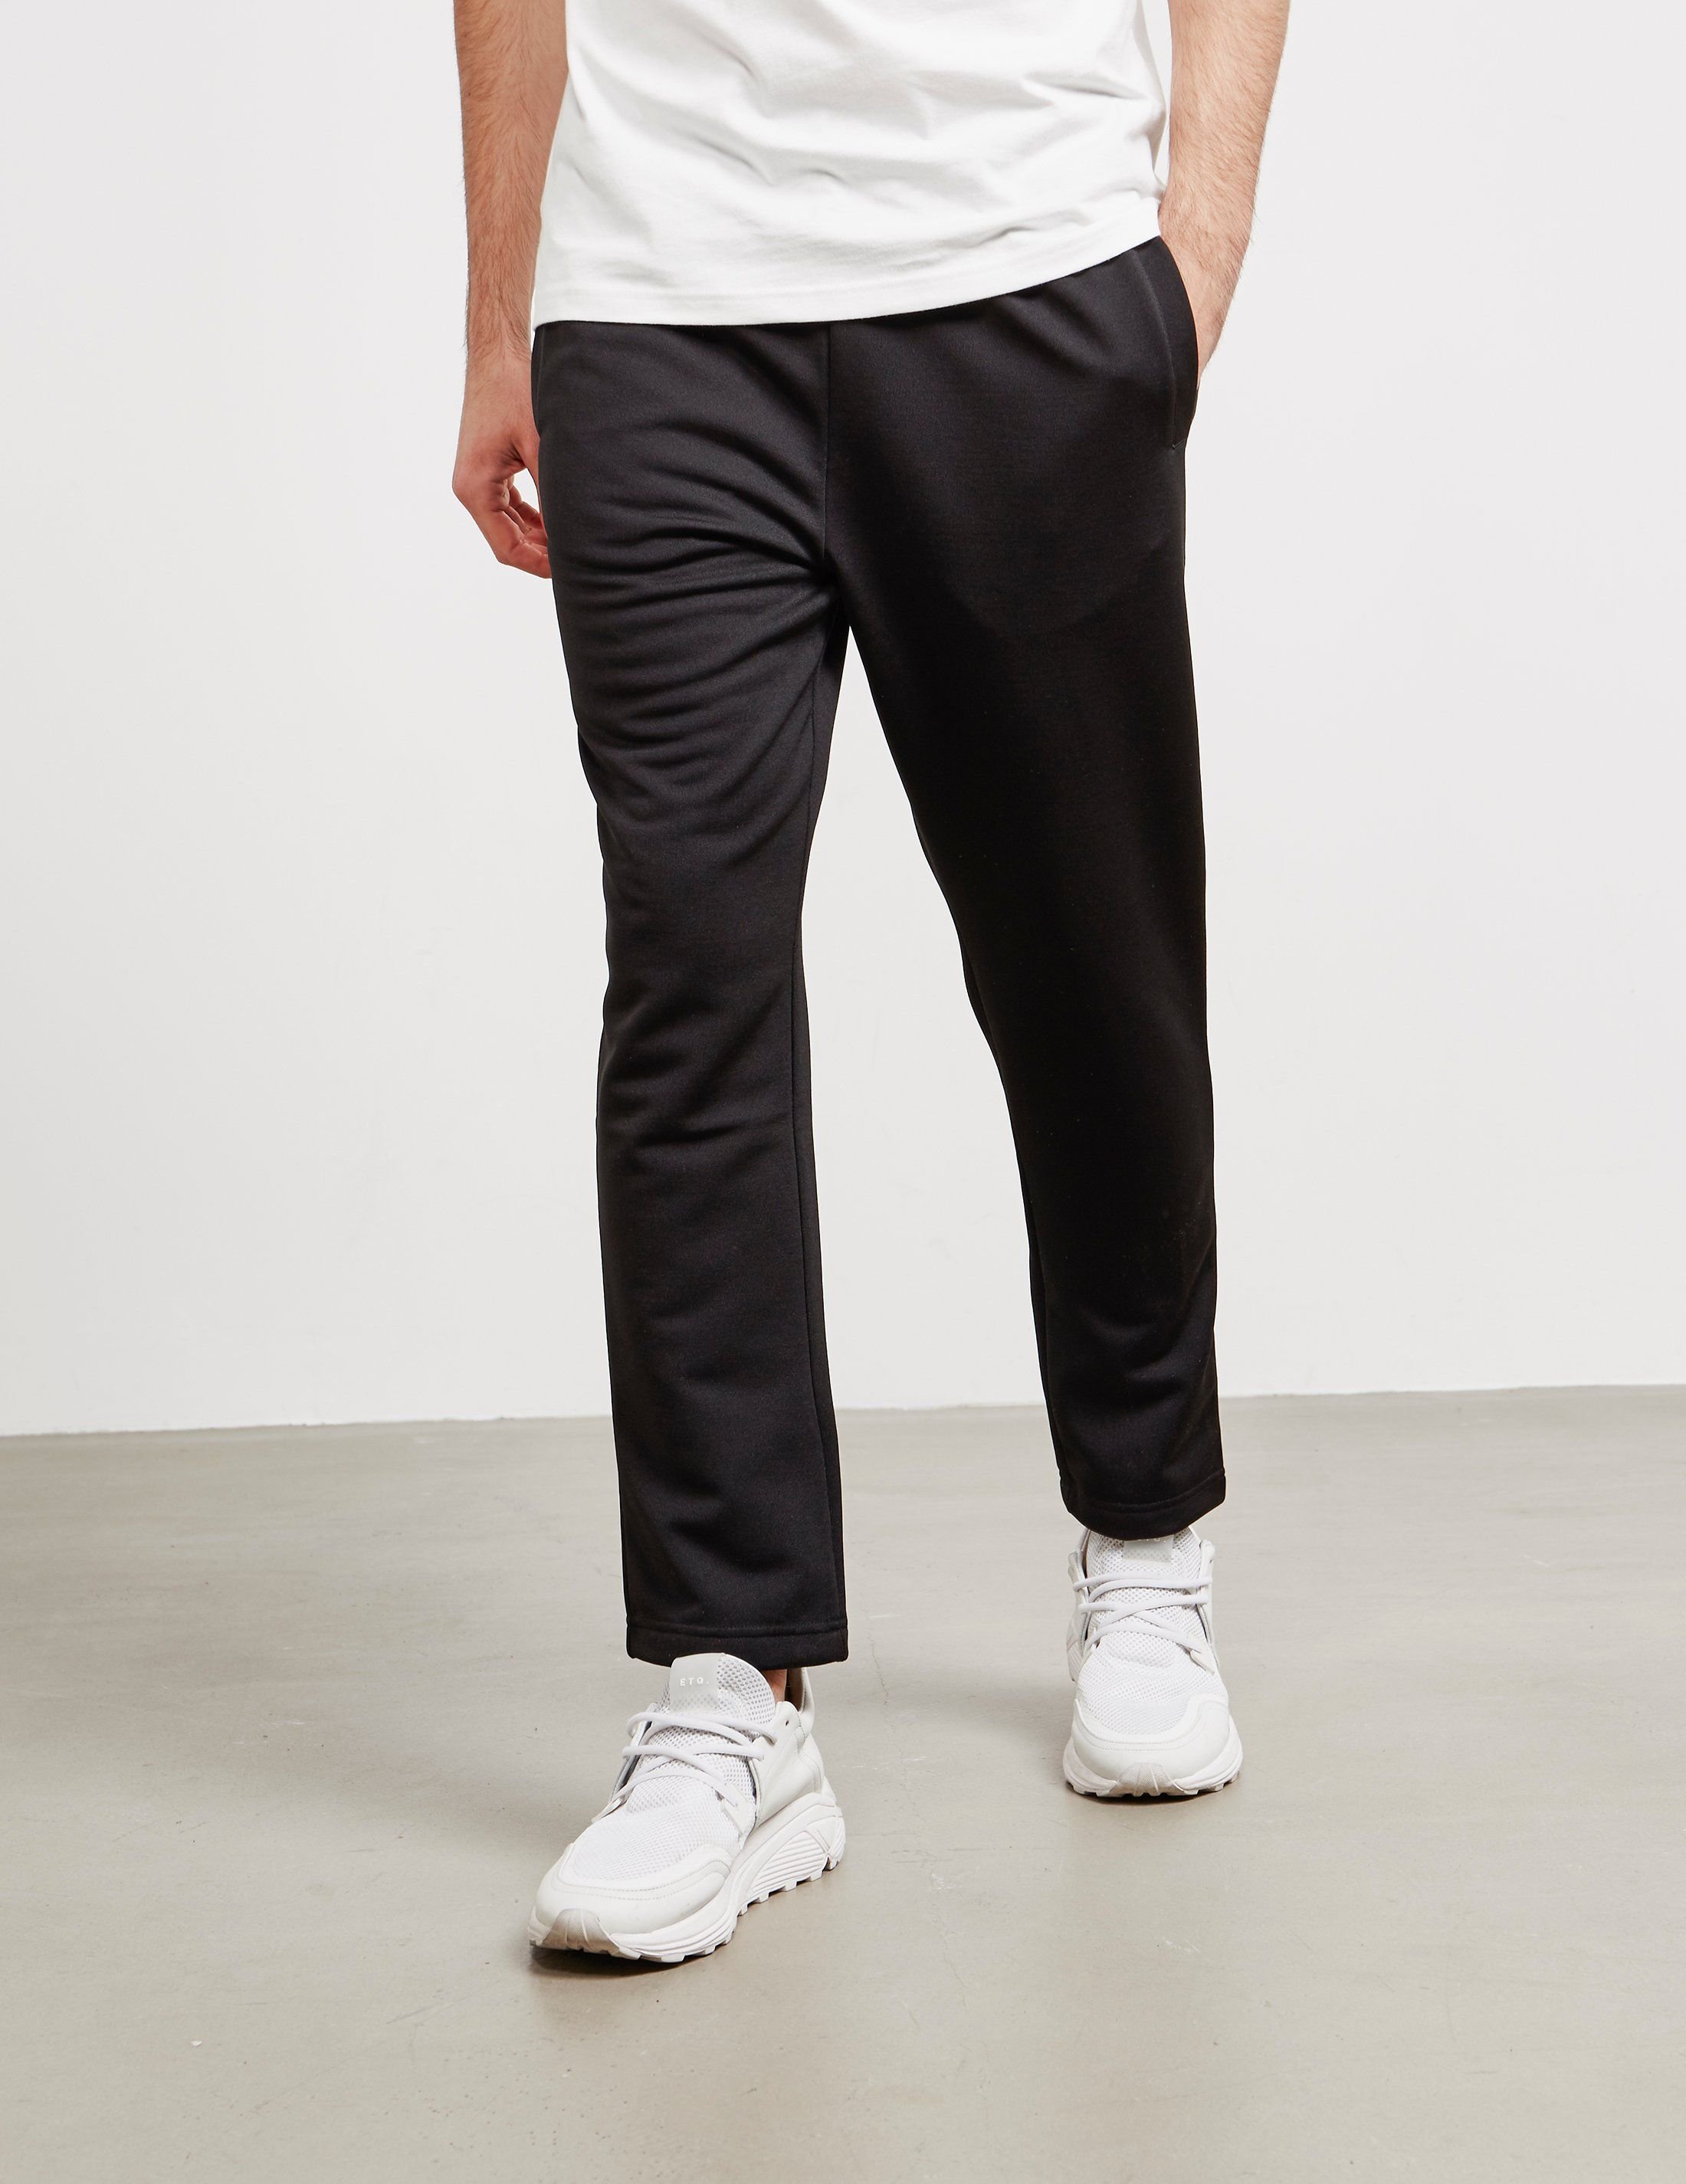 Fred Perry x Miles Kane Tricot Track Pants - Online Exclusive